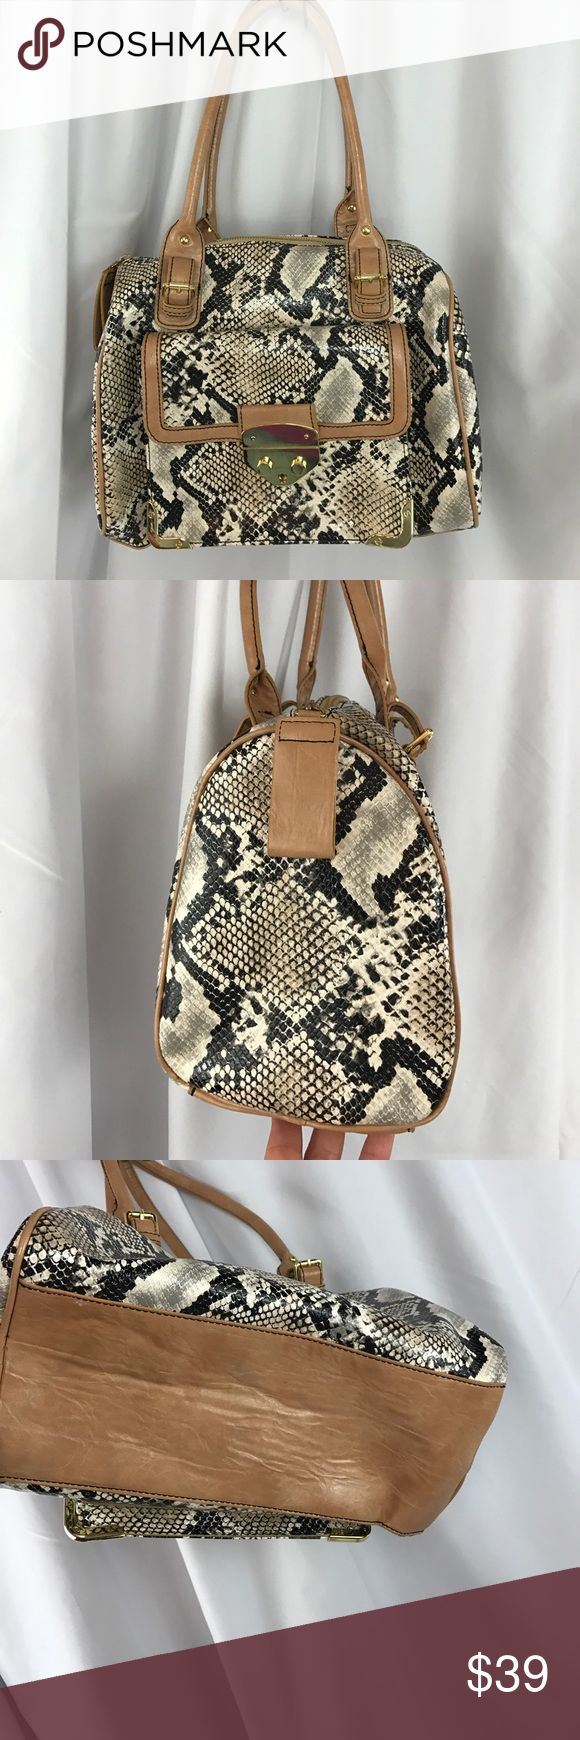 """Jessica Simpson faux snakeskin satchel w/tan trim Excellent used condition Jessica Simpson faux snakeskin satchel w/tan trim...gold metal accents...9"""" handle drop...13""""X11""""x5""""...very clean interior...no stains/no tears/no odors... Jessica Simpson Bags Satchels"""